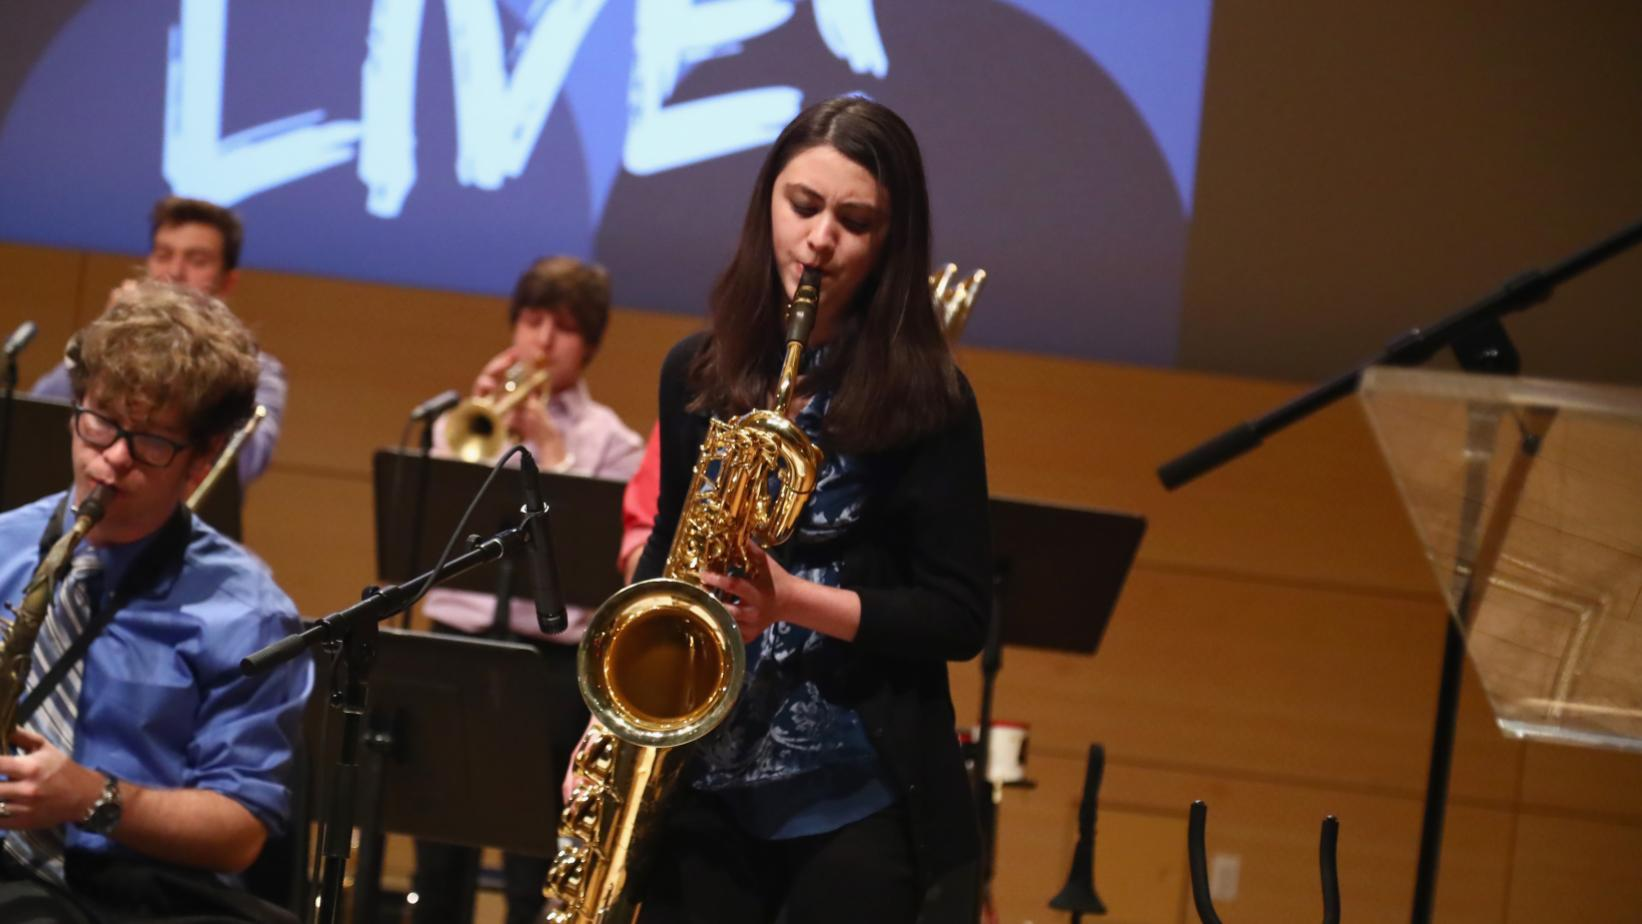 Veronica Leahy performs at GRAMMY In The Schools Live! in New York